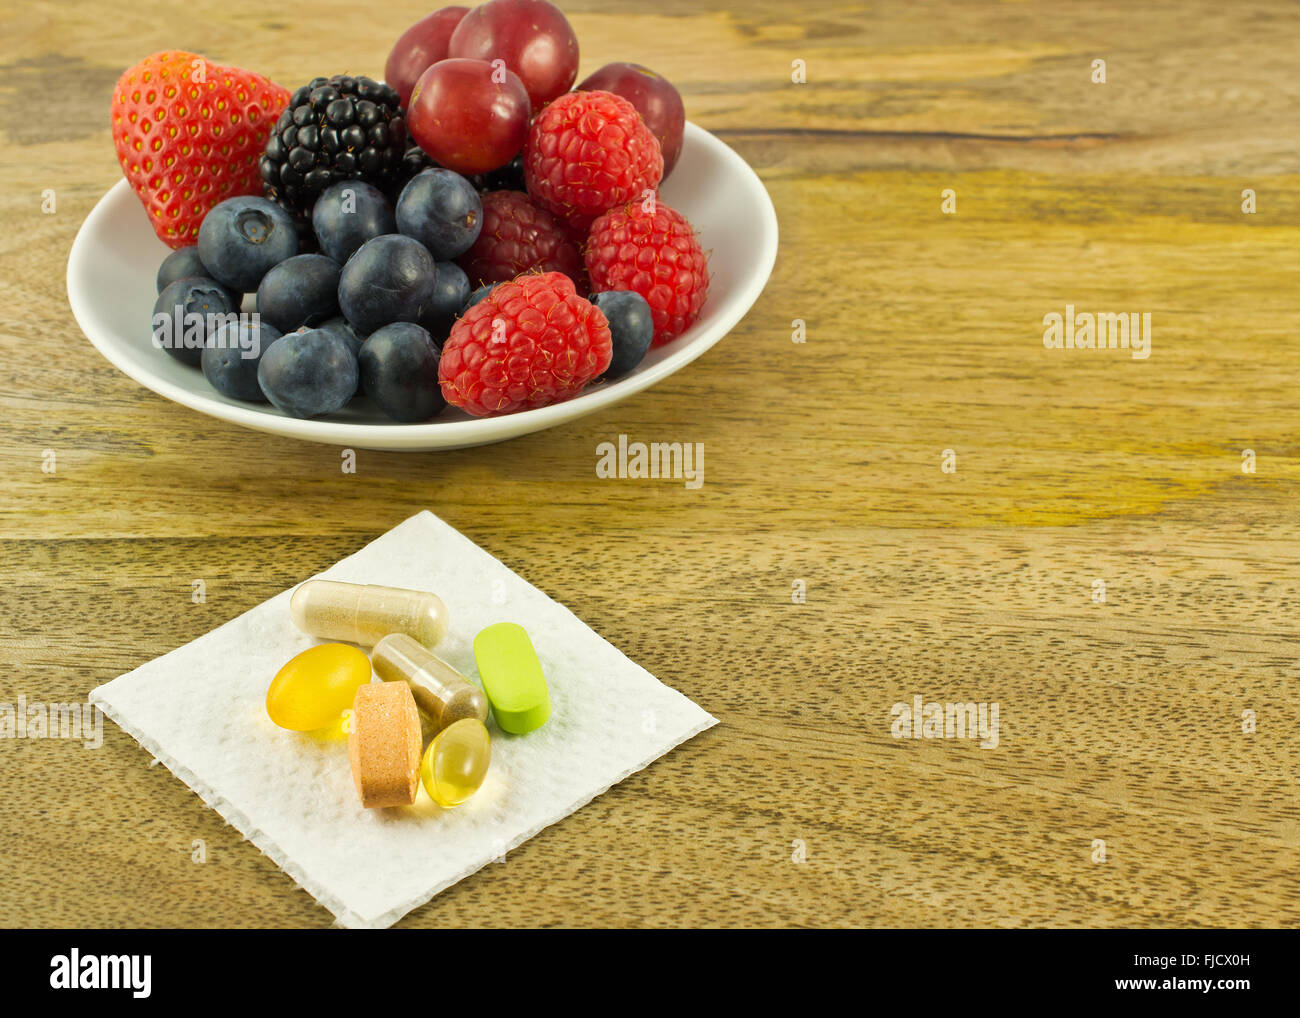 Berries and dietary supplements on wooden table - Stock Image